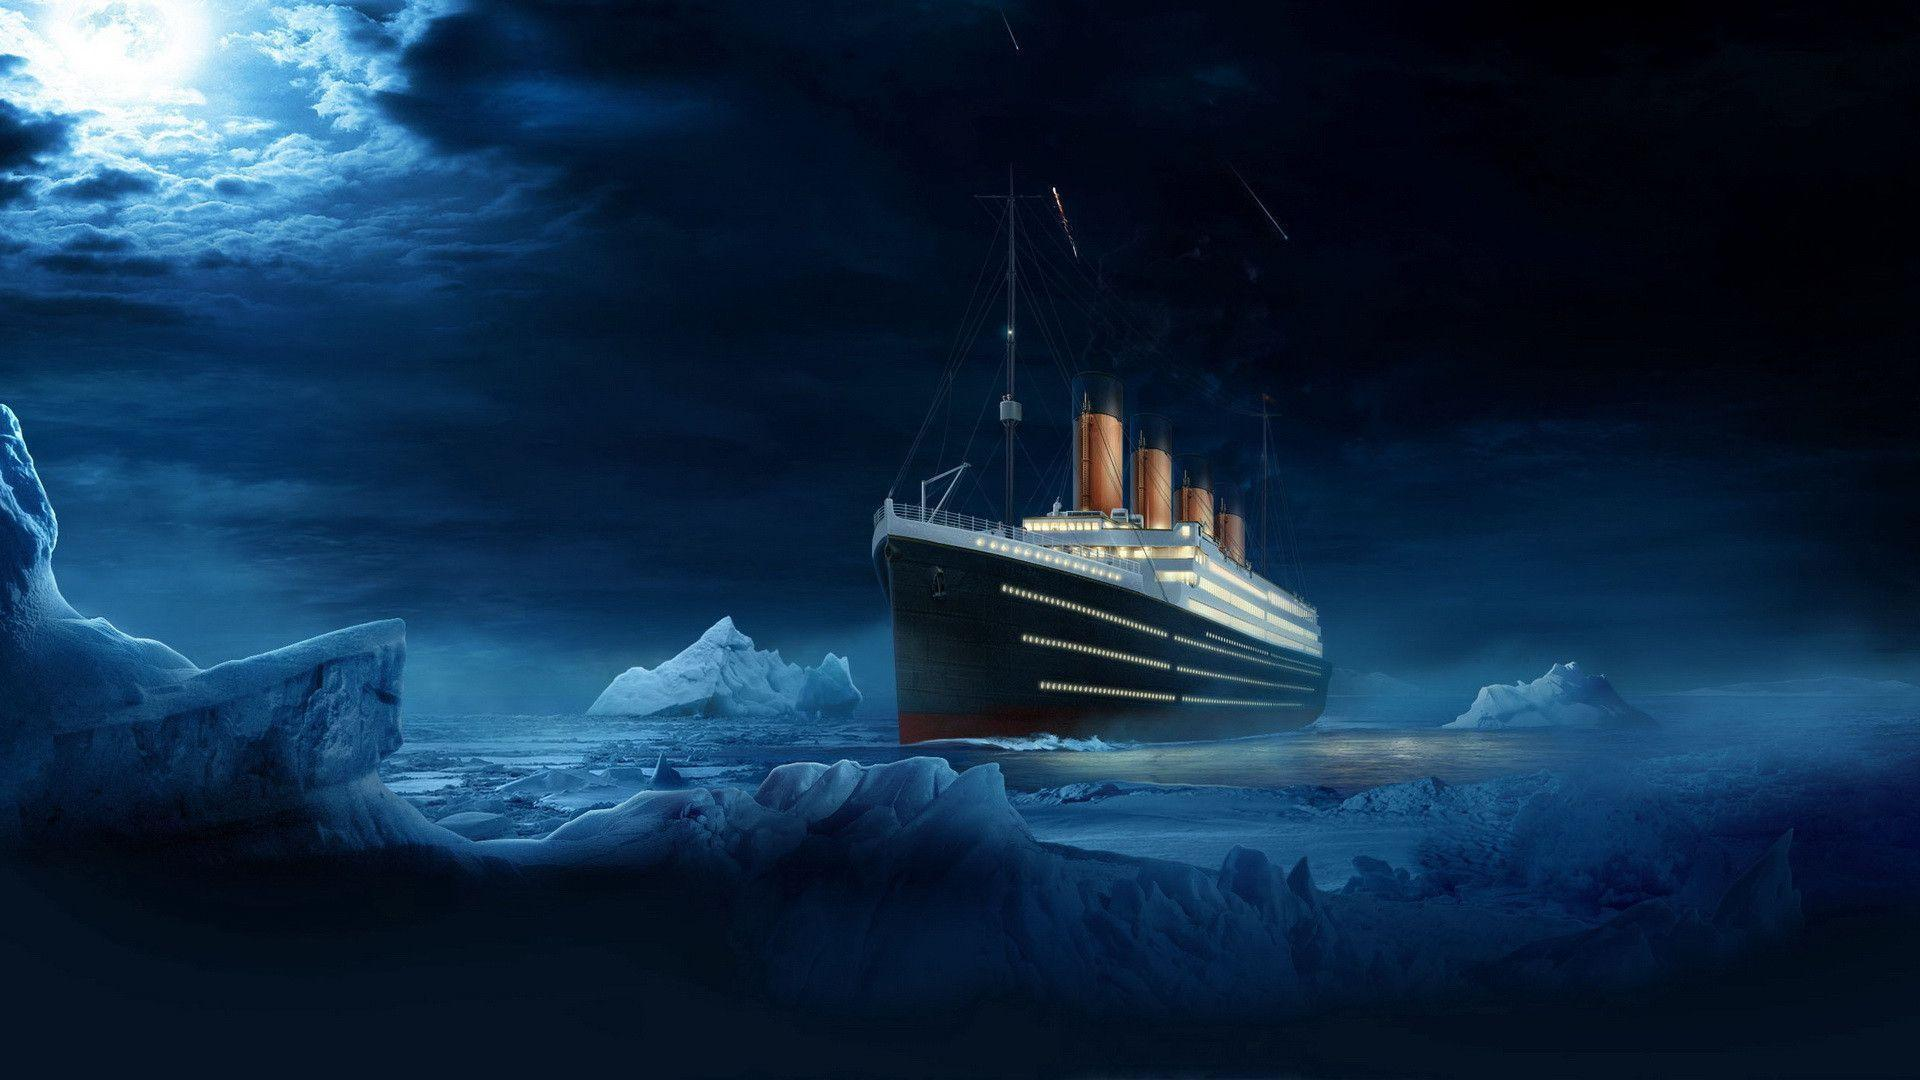 titanic ship images free - photo #2